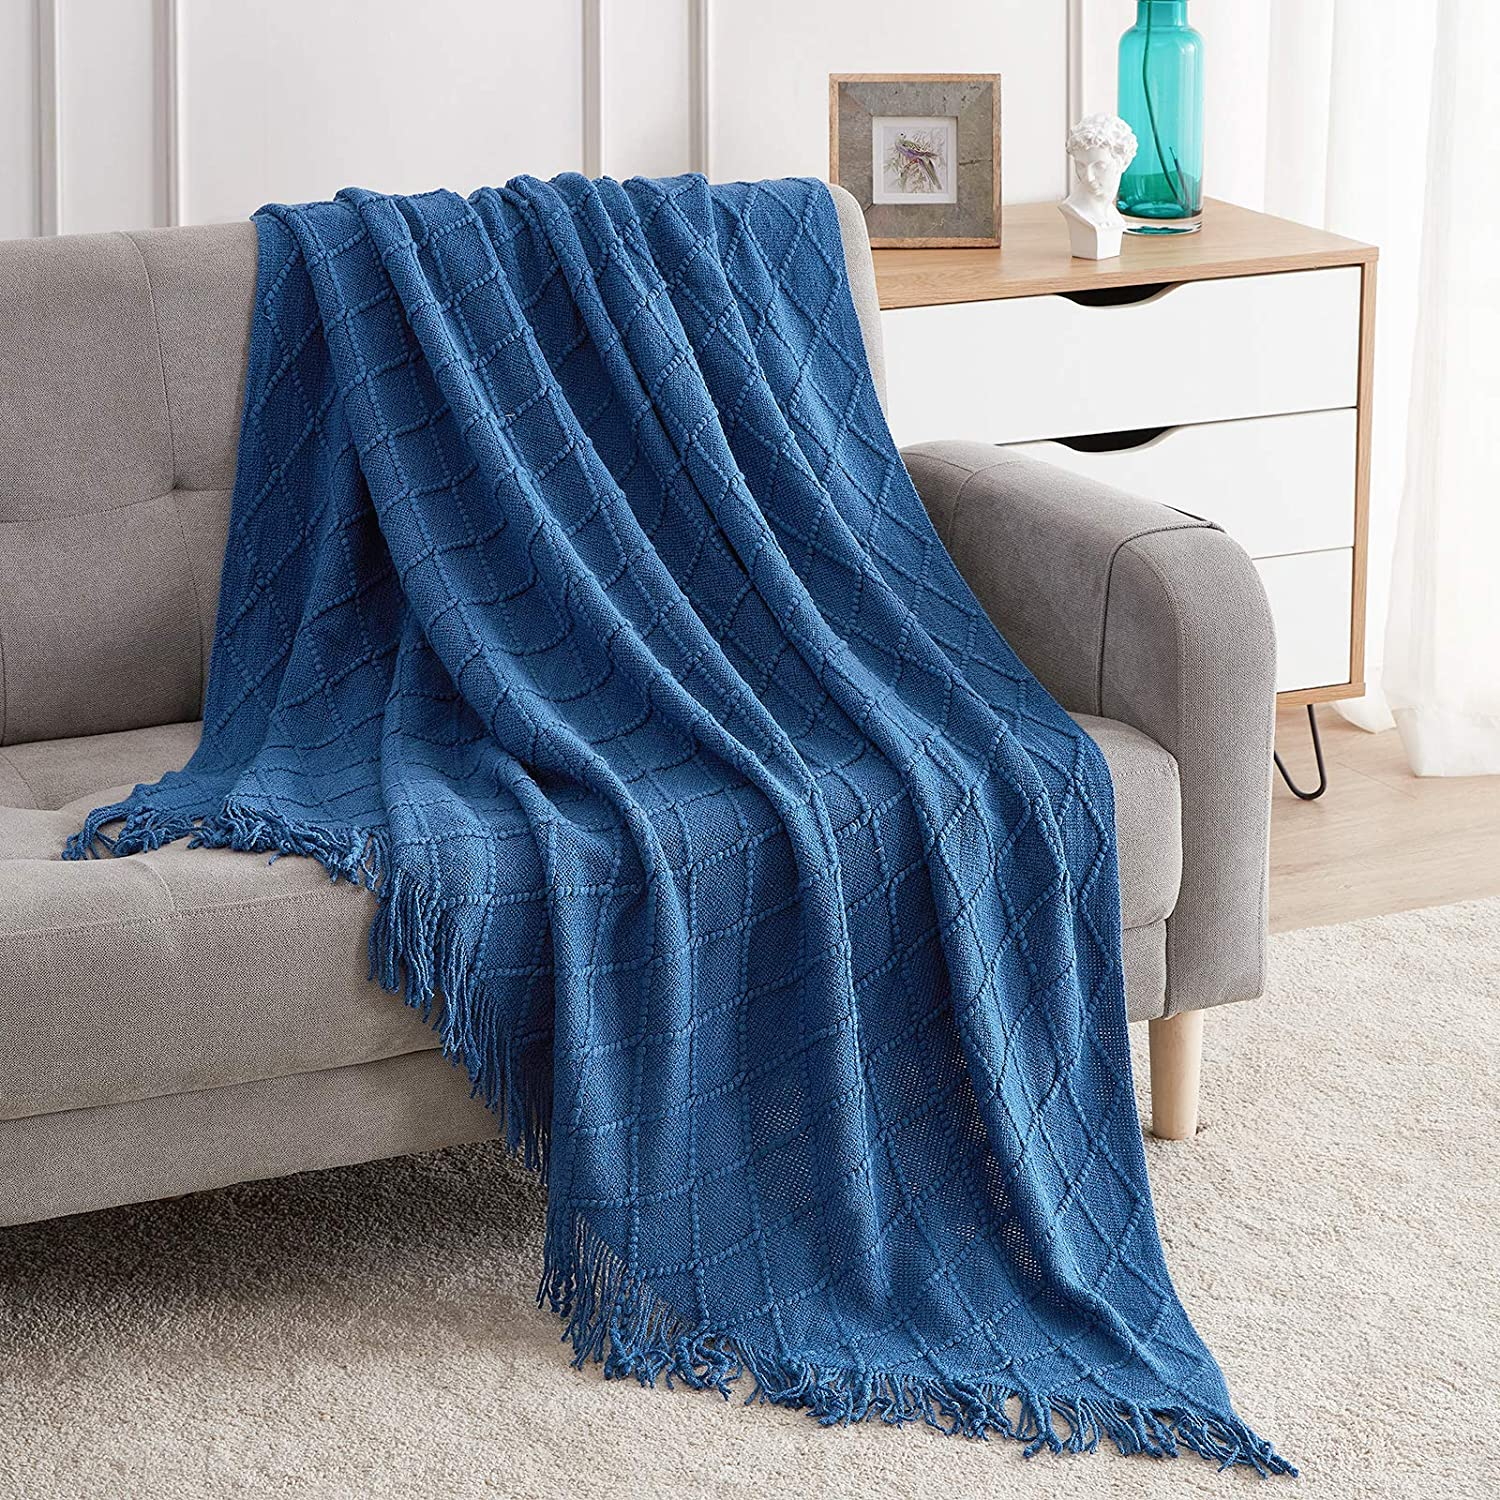 "Bourina Textured Solid Soft Sofa Throw Couch Cover Knitted Decorative Blanket,Royal Blue 50""x60"""